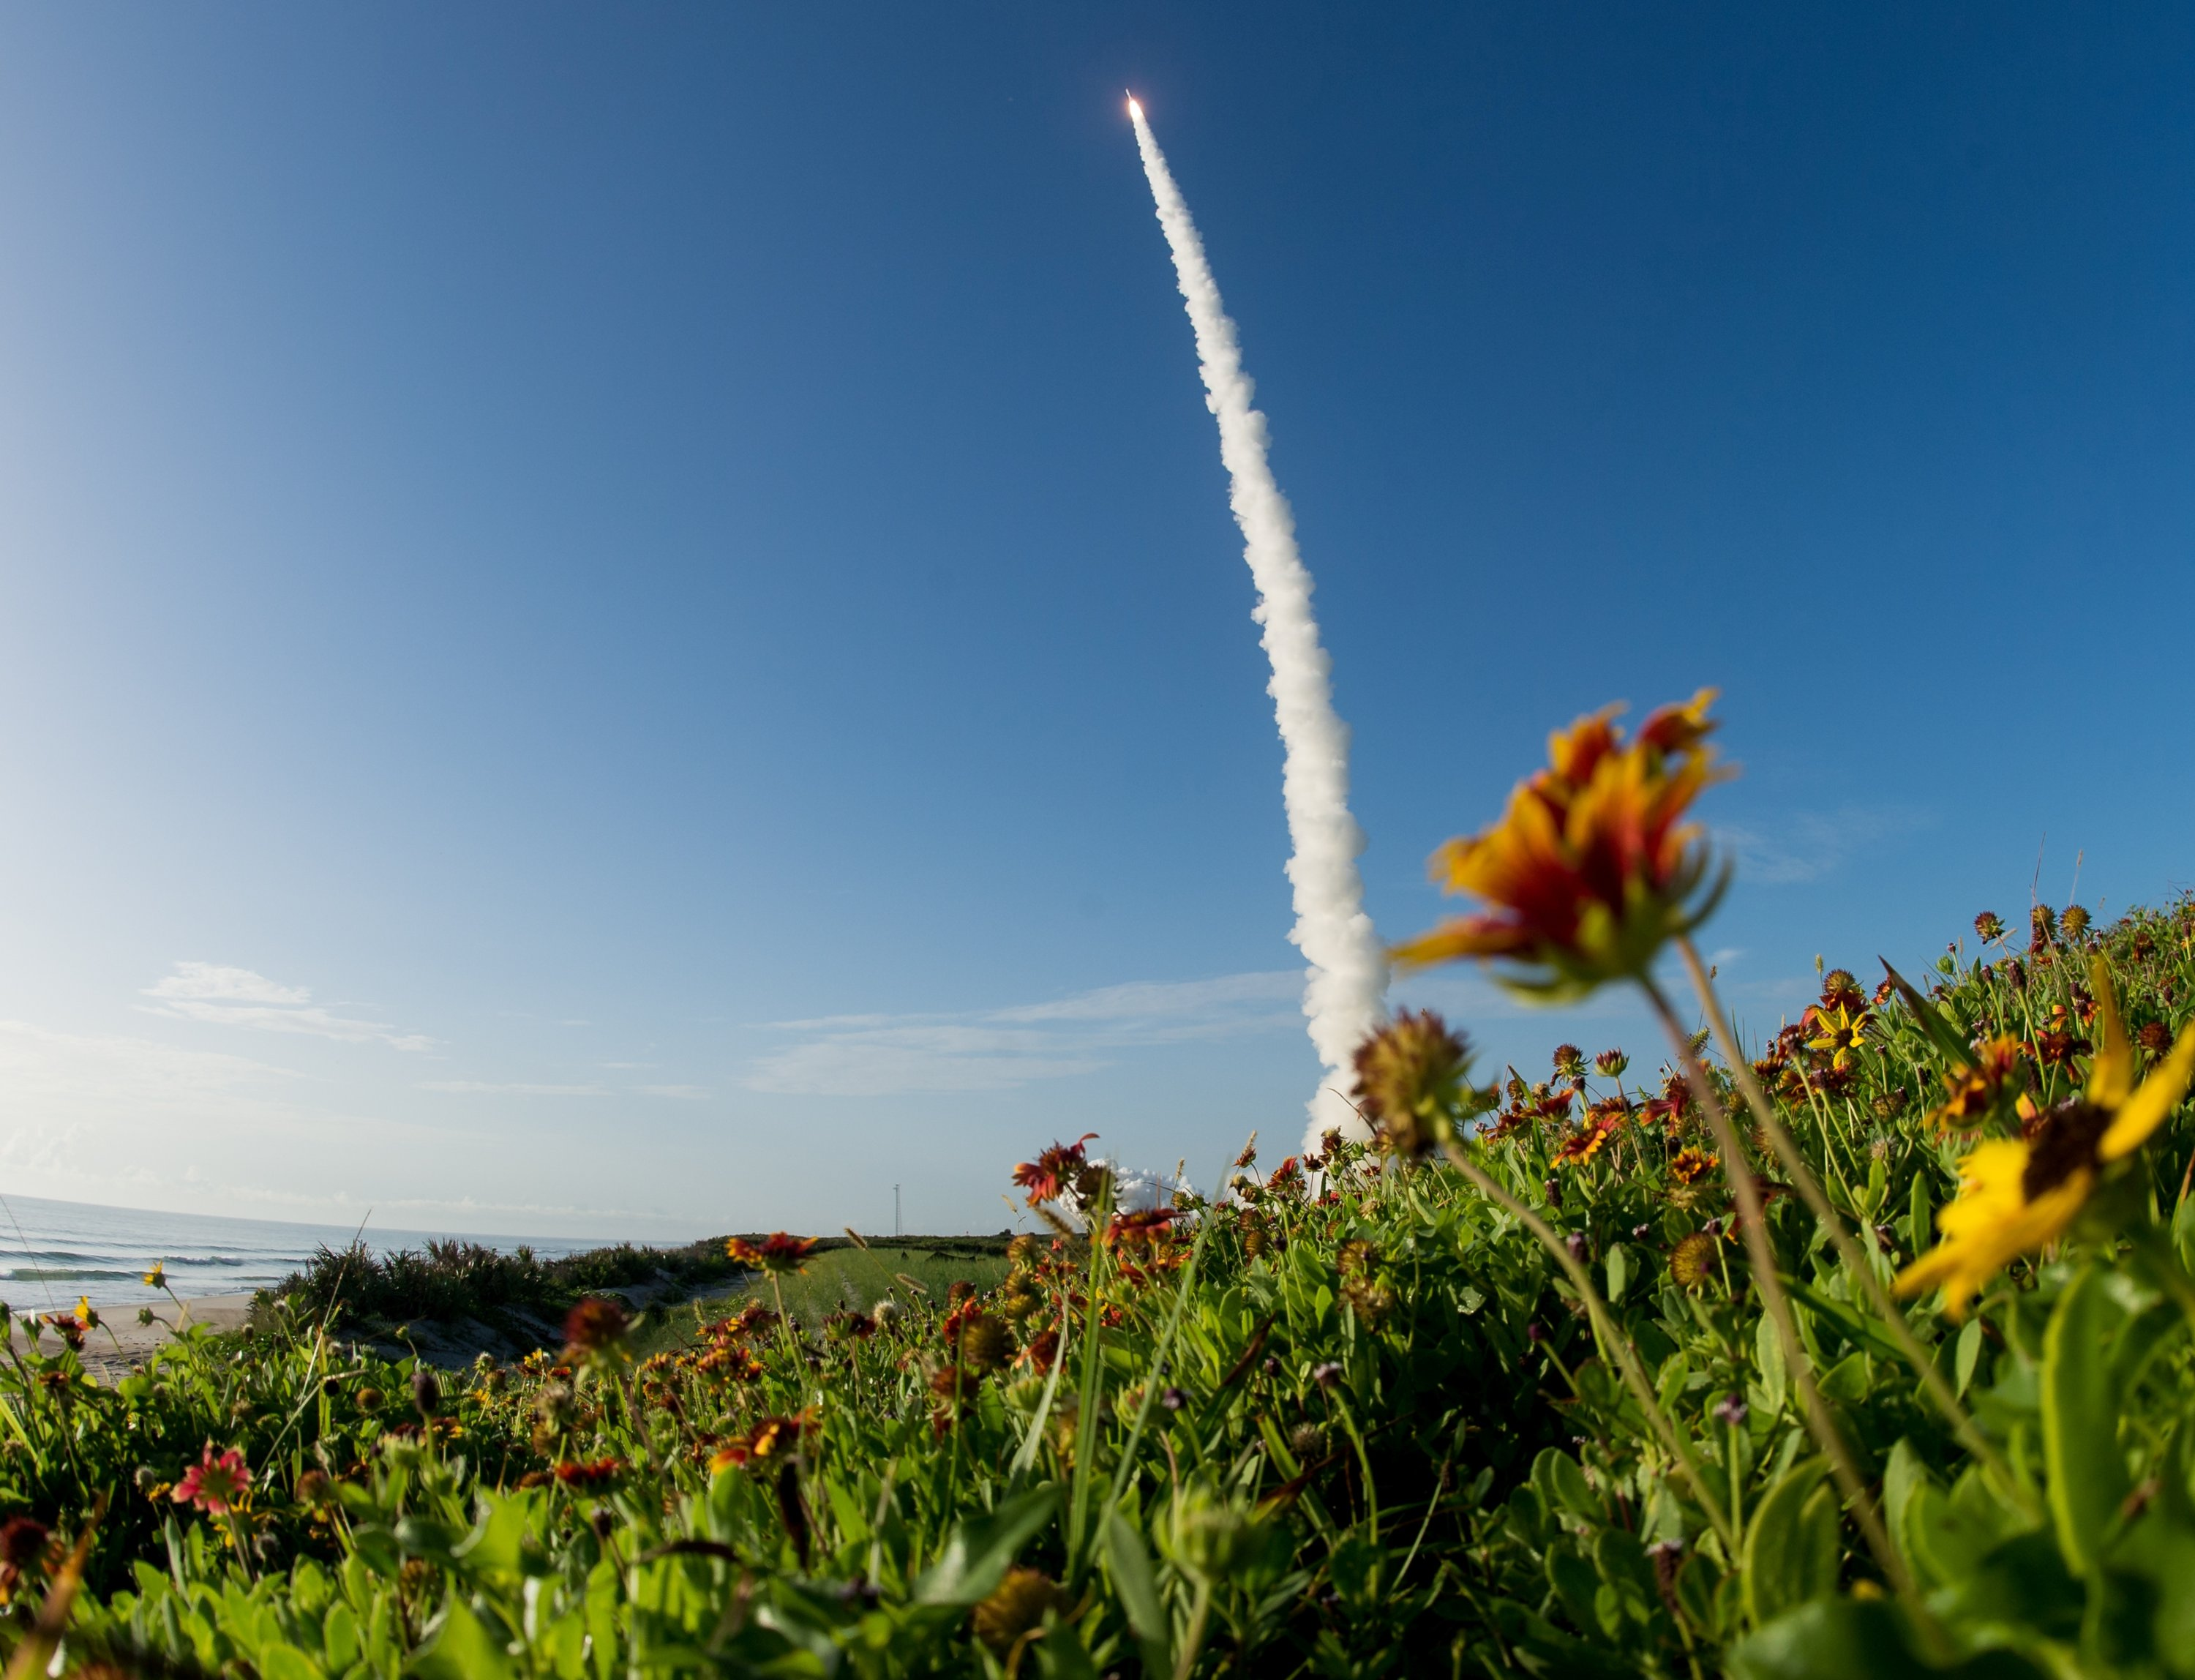 A United Launch Alliance Atlas V rocket carrying NASA's Mars 2020 Perseverance Rover vehicle takes off from Cape Canaveral Air Force Station in Cape Canaveral, Florida, U.S. July 30, 2020. (NASA/Joel Kowsky/Handout via REUTERS)